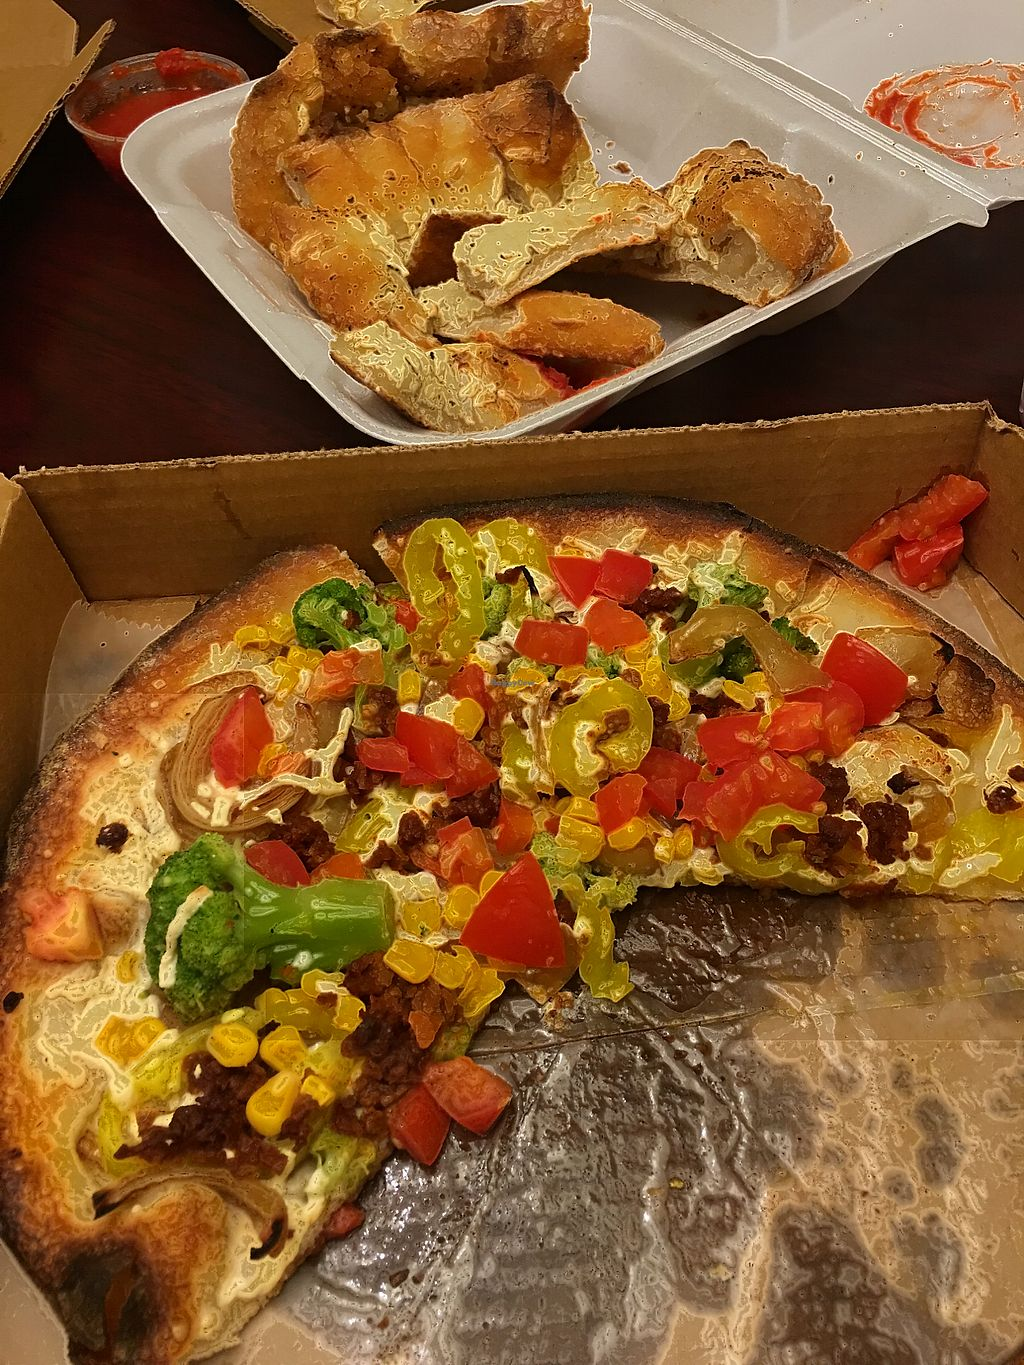 """Photo of Gourmet Pizza Company  by <a href=""""/members/profile/ShanayshaEvans"""">ShanayshaEvans</a> <br/>Huli Vegan, corn and broccoli added <br/> October 10, 2017  - <a href='/contact/abuse/image/8076/313798'>Report</a>"""